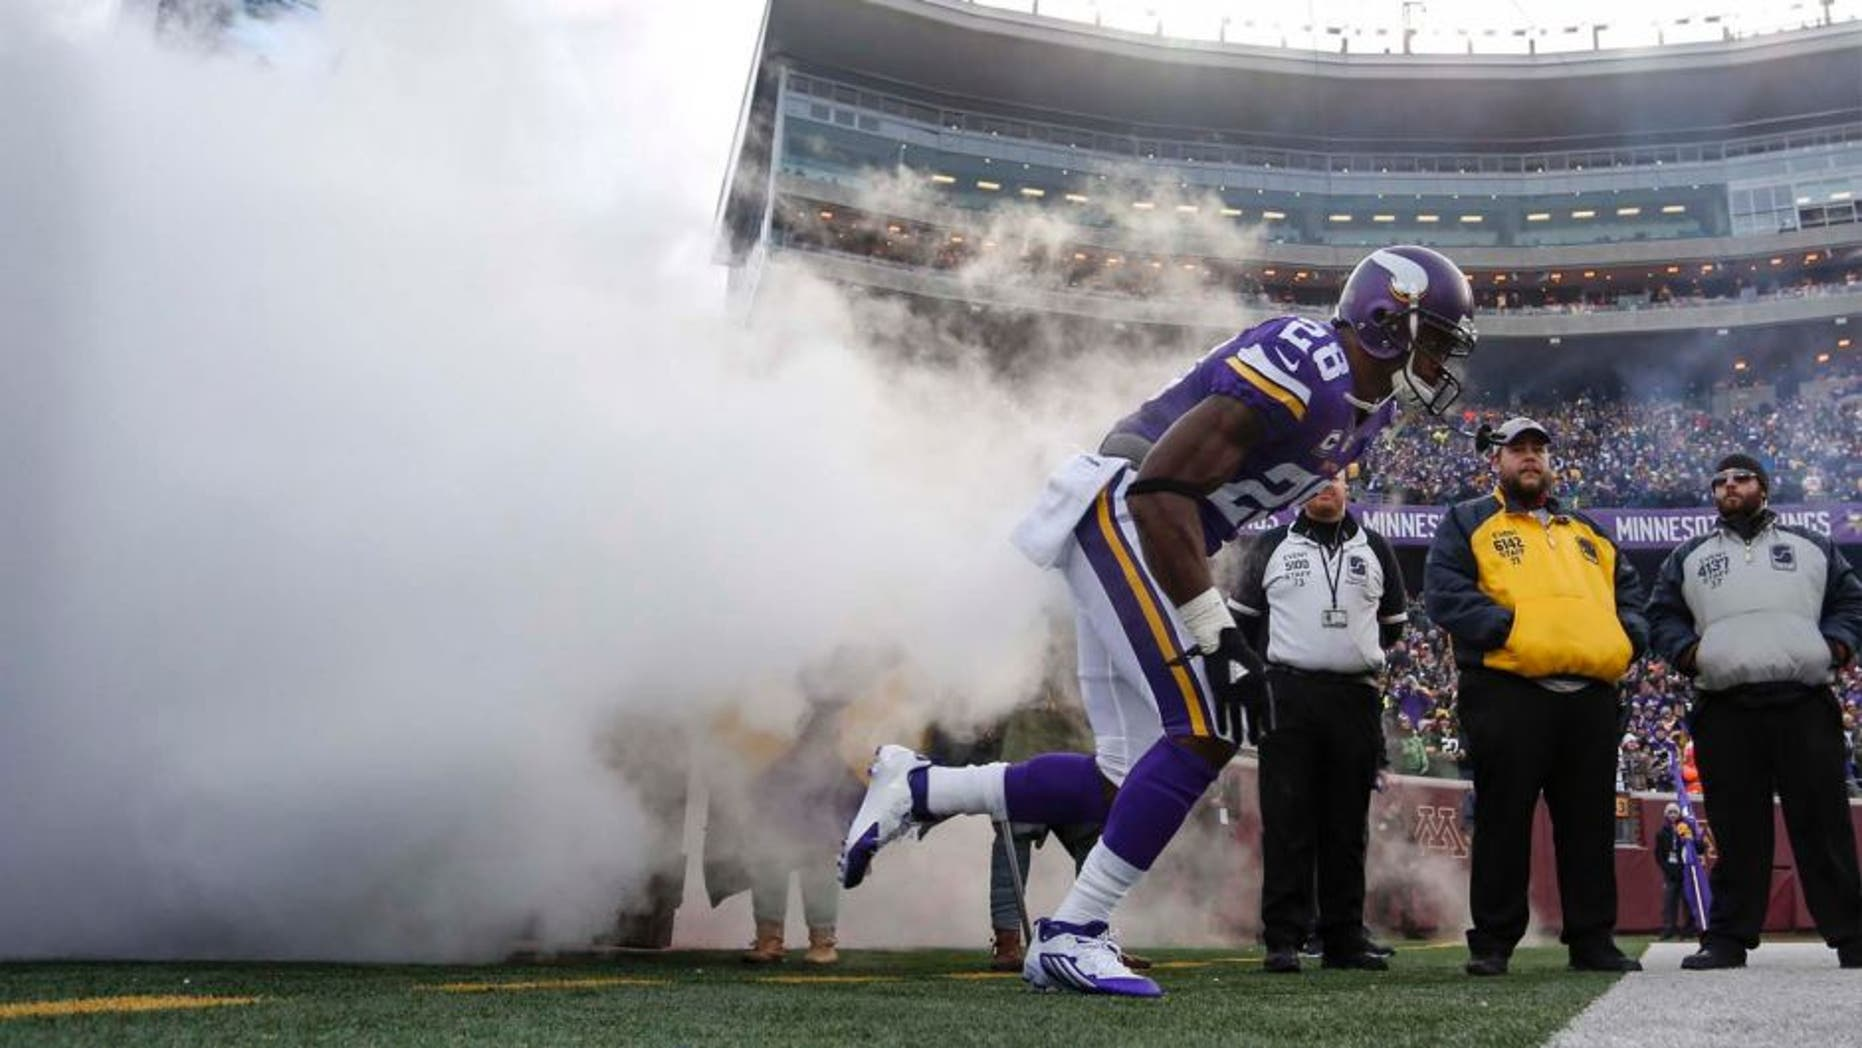 Sunday, Nov. 22: Minnesota Vikings running back Adrian Peterson comes onto the field out of a cloud of smoke to play the Green Bay Packers at TCF Bank Stadium in Minneapolis.